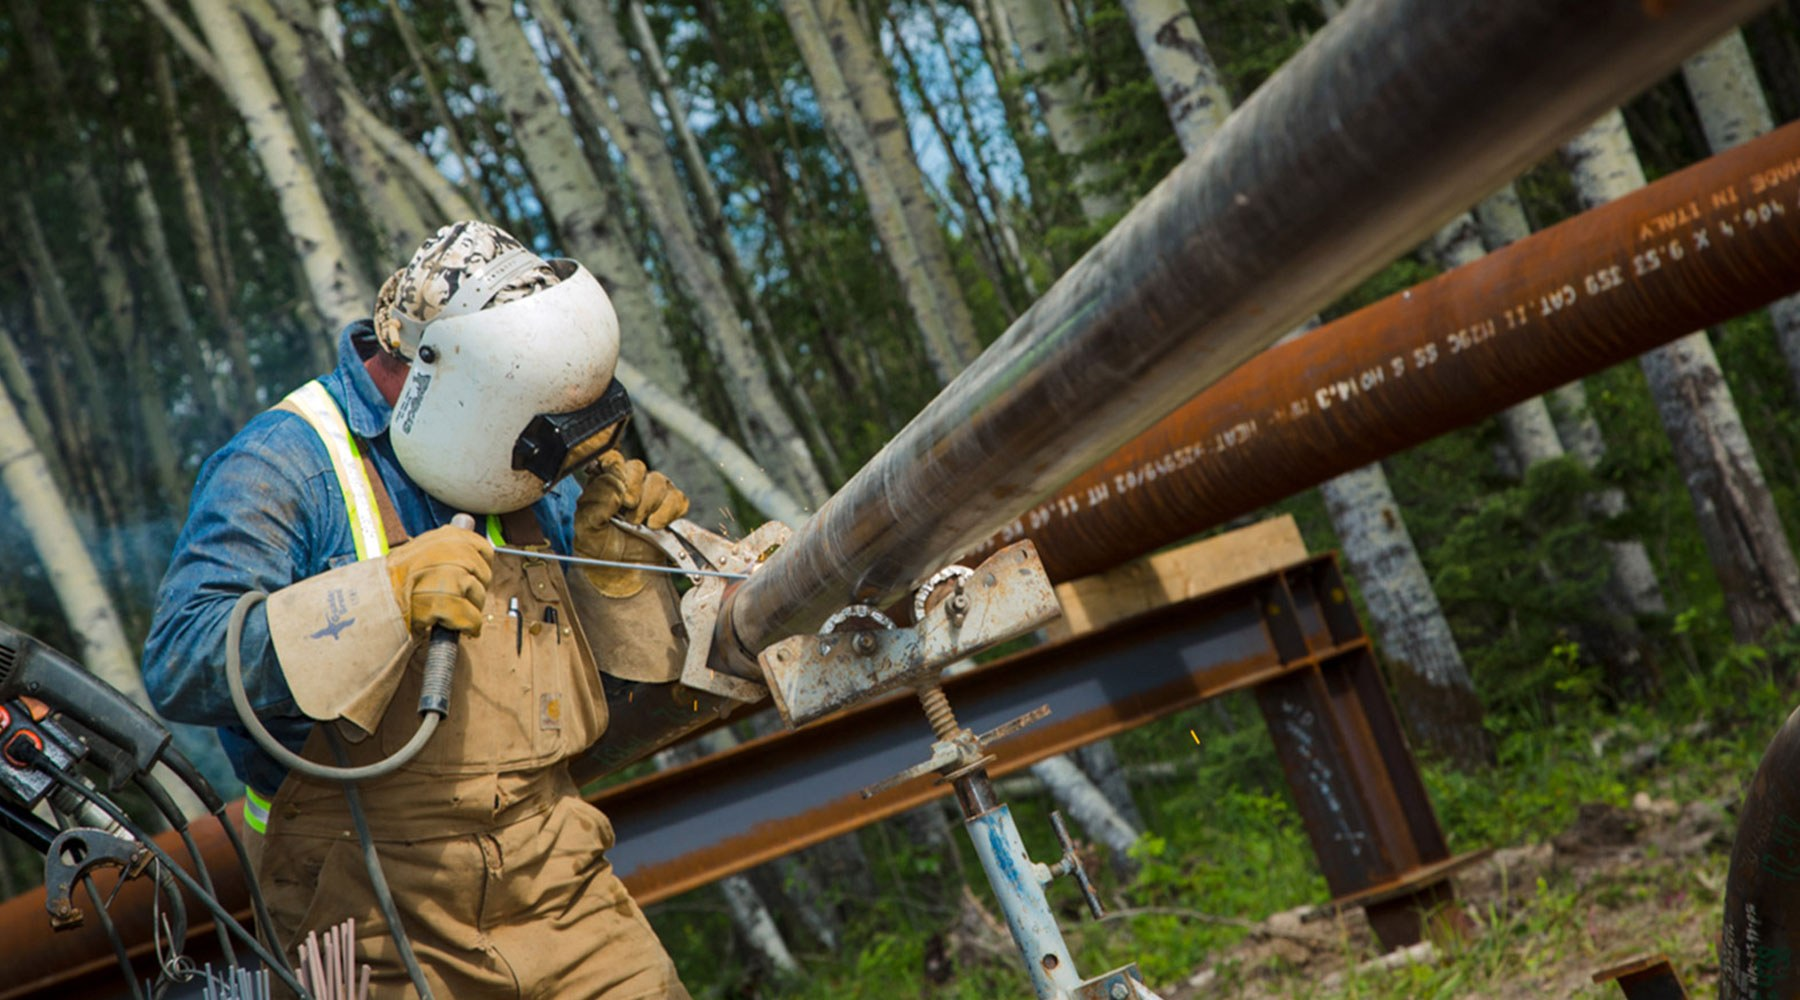 Worker performing maintenance on a pipe in a forest